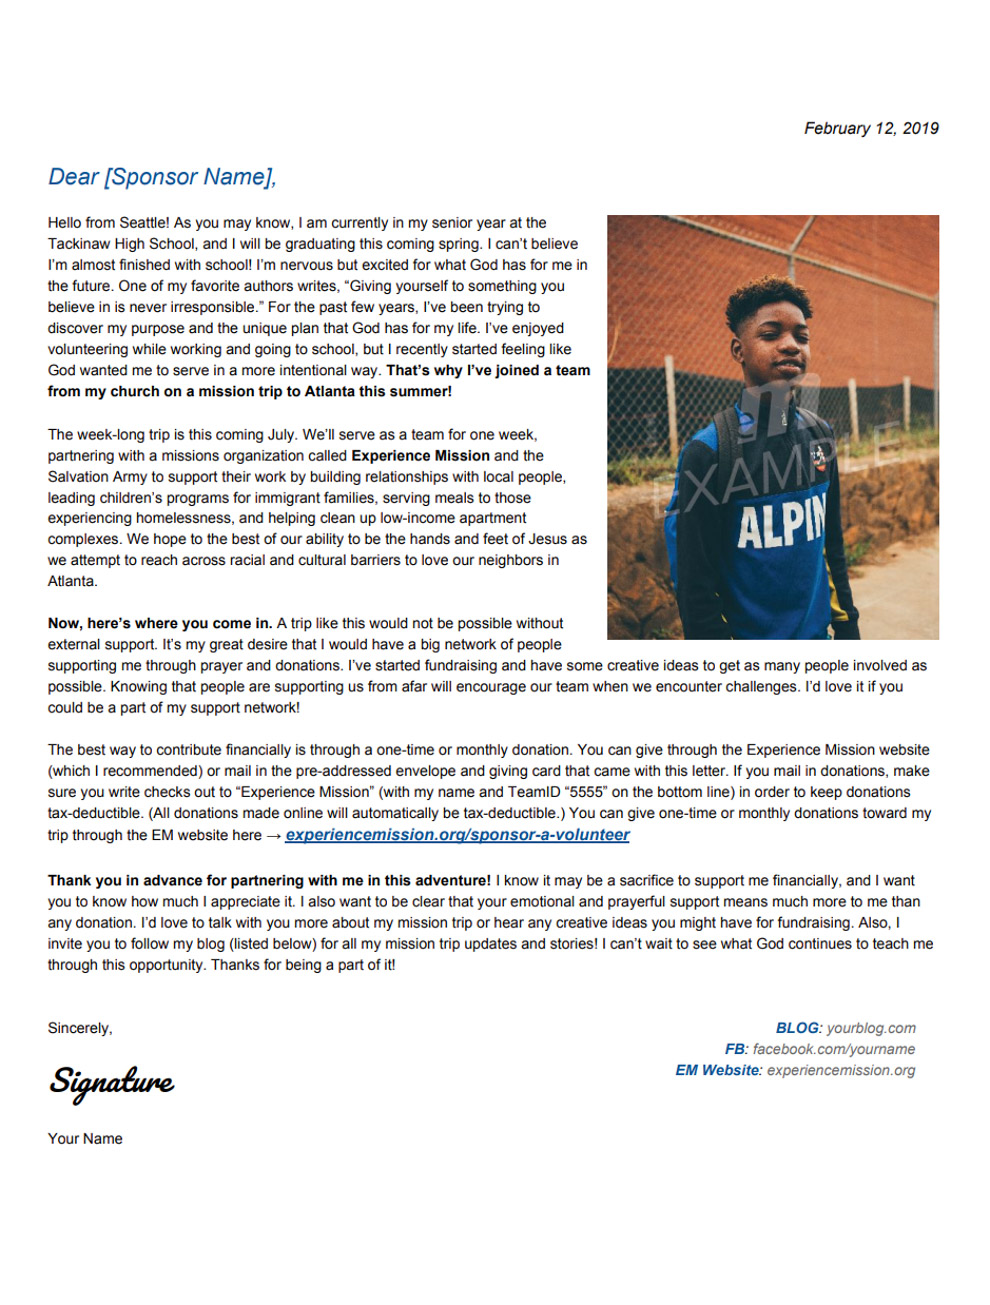 Mission trip support letter examples – clgss. Net.